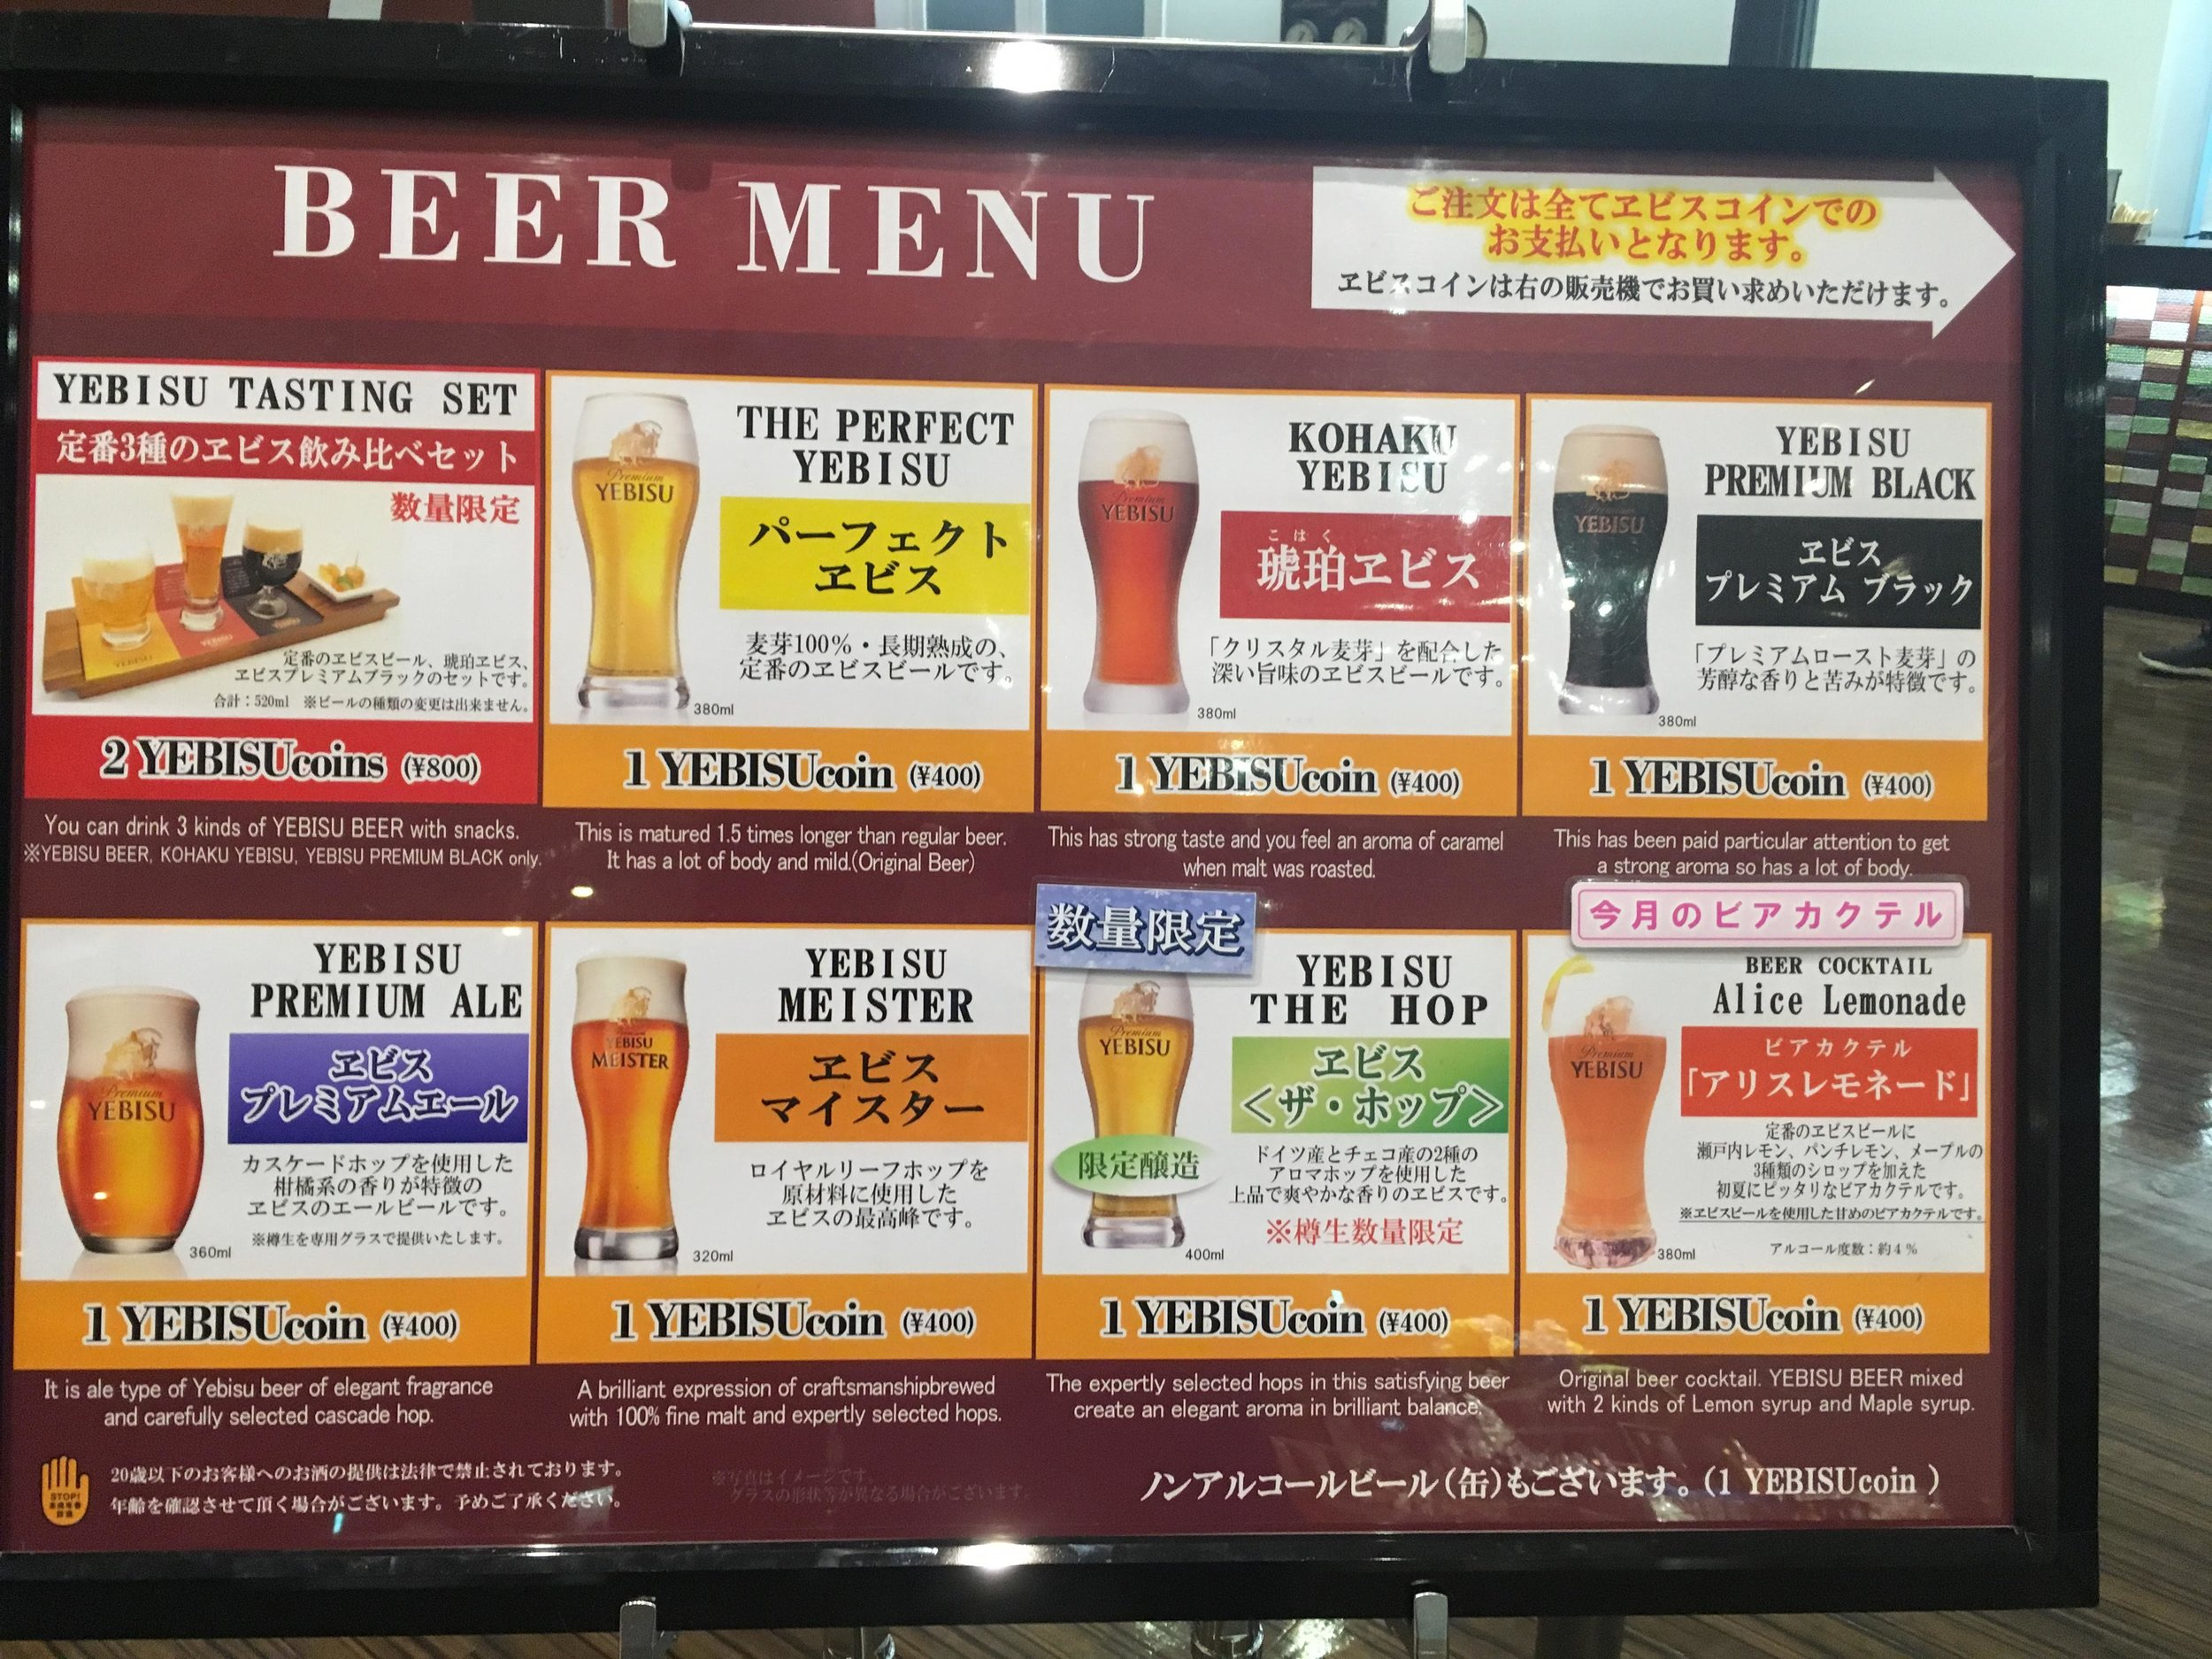 Yebisu Beer tasting set menu - exchange Yen for Yebisu Coins to buy beer at the tasting room